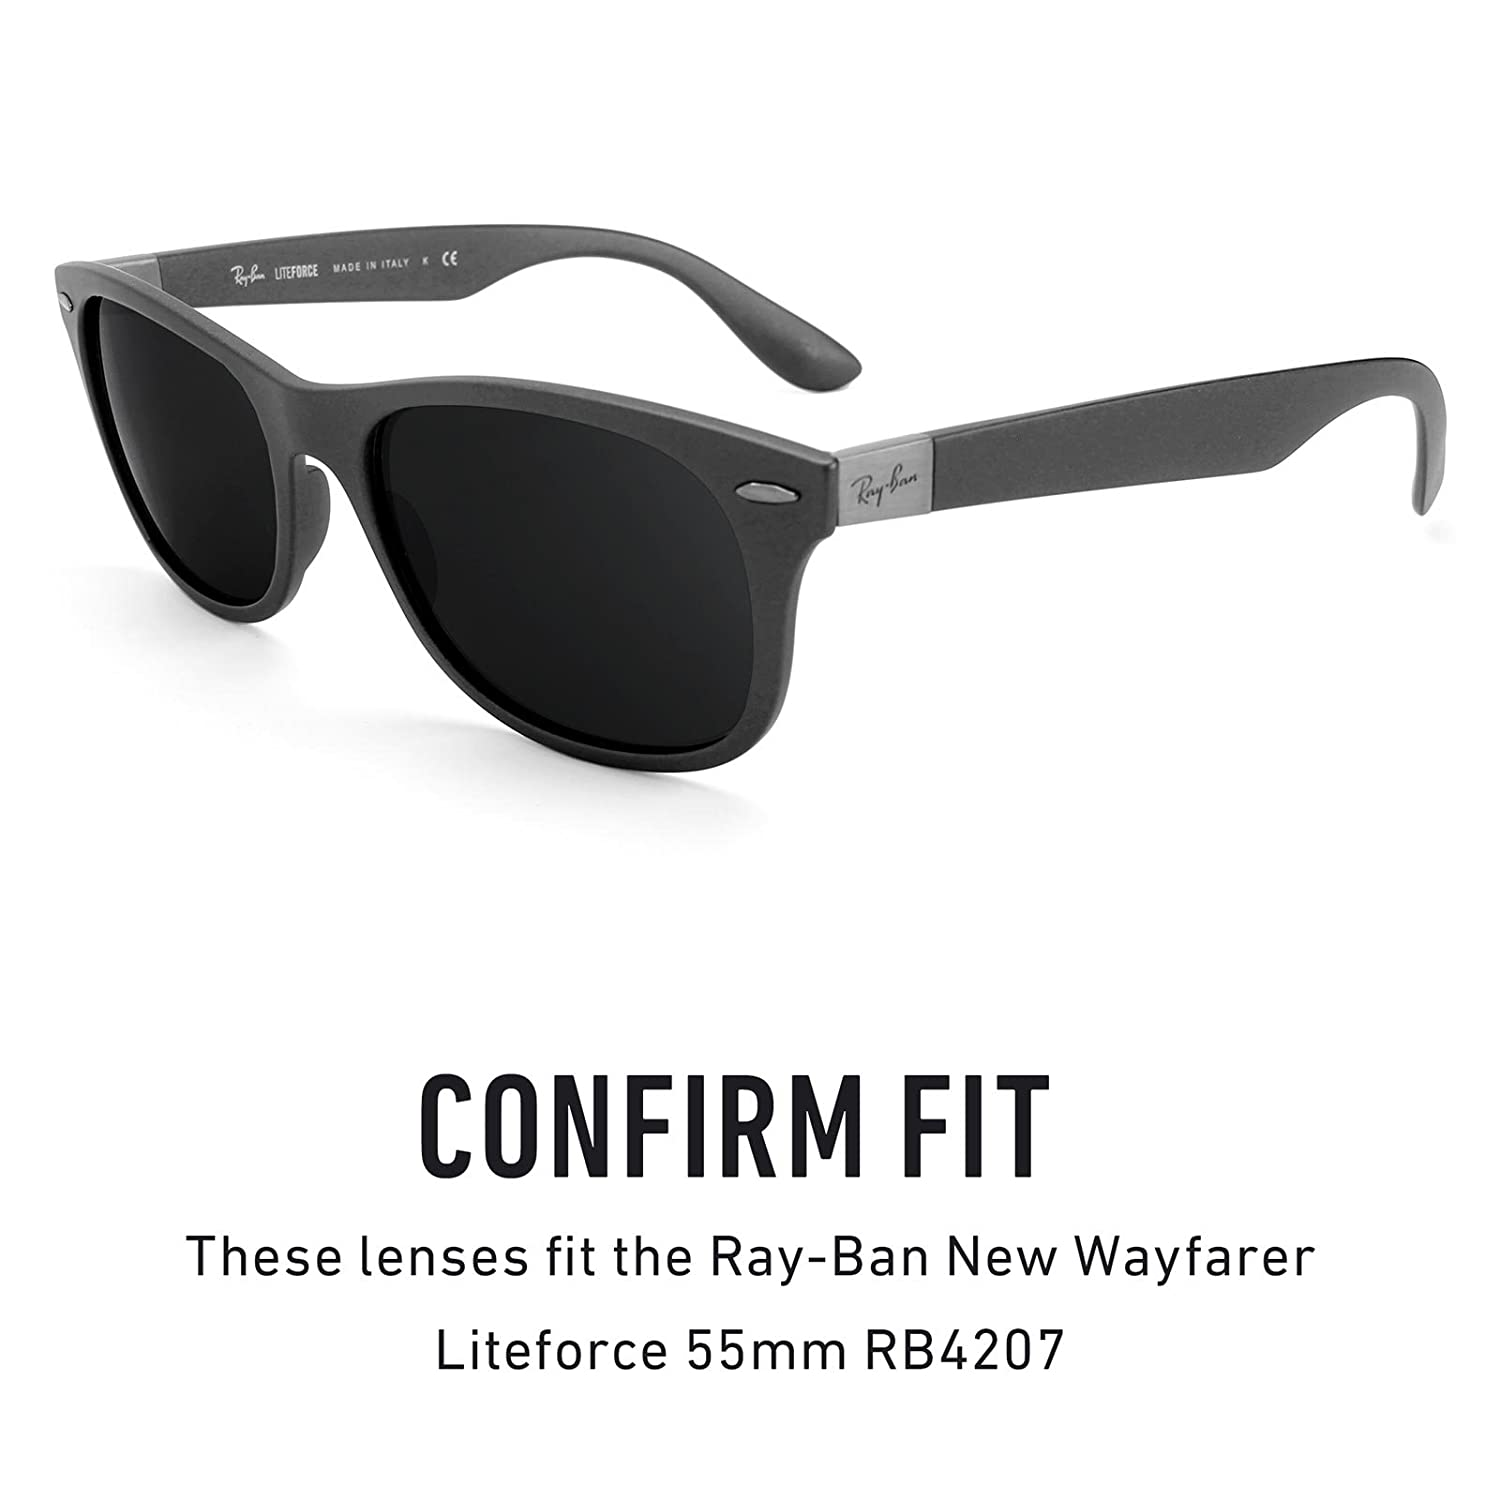 635f17dbf88e3 Revant Polarized Replacement Lenses for Ray Ban New Wayfarer Liteforce 55mm RB4207  Black Chrome MirrorShield at Amazon Men s Clothing store